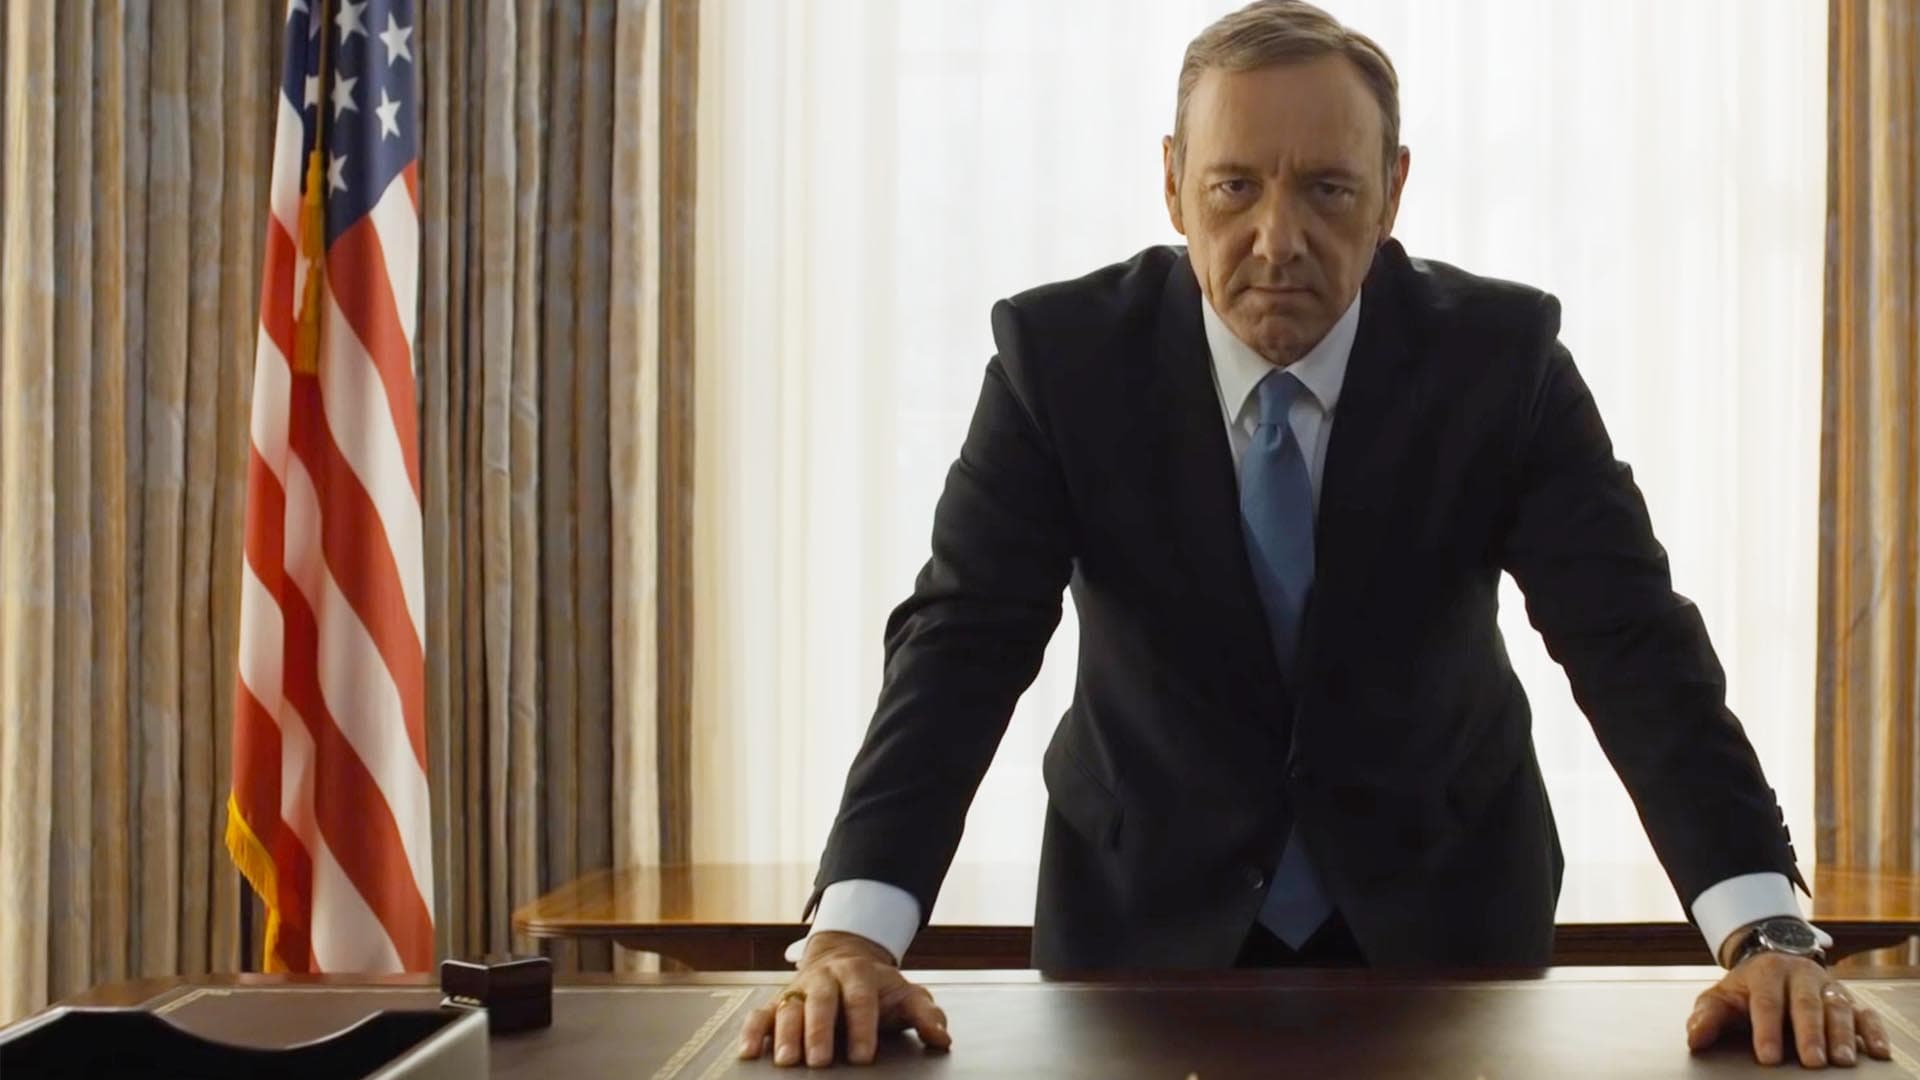 House of Cards HD pics